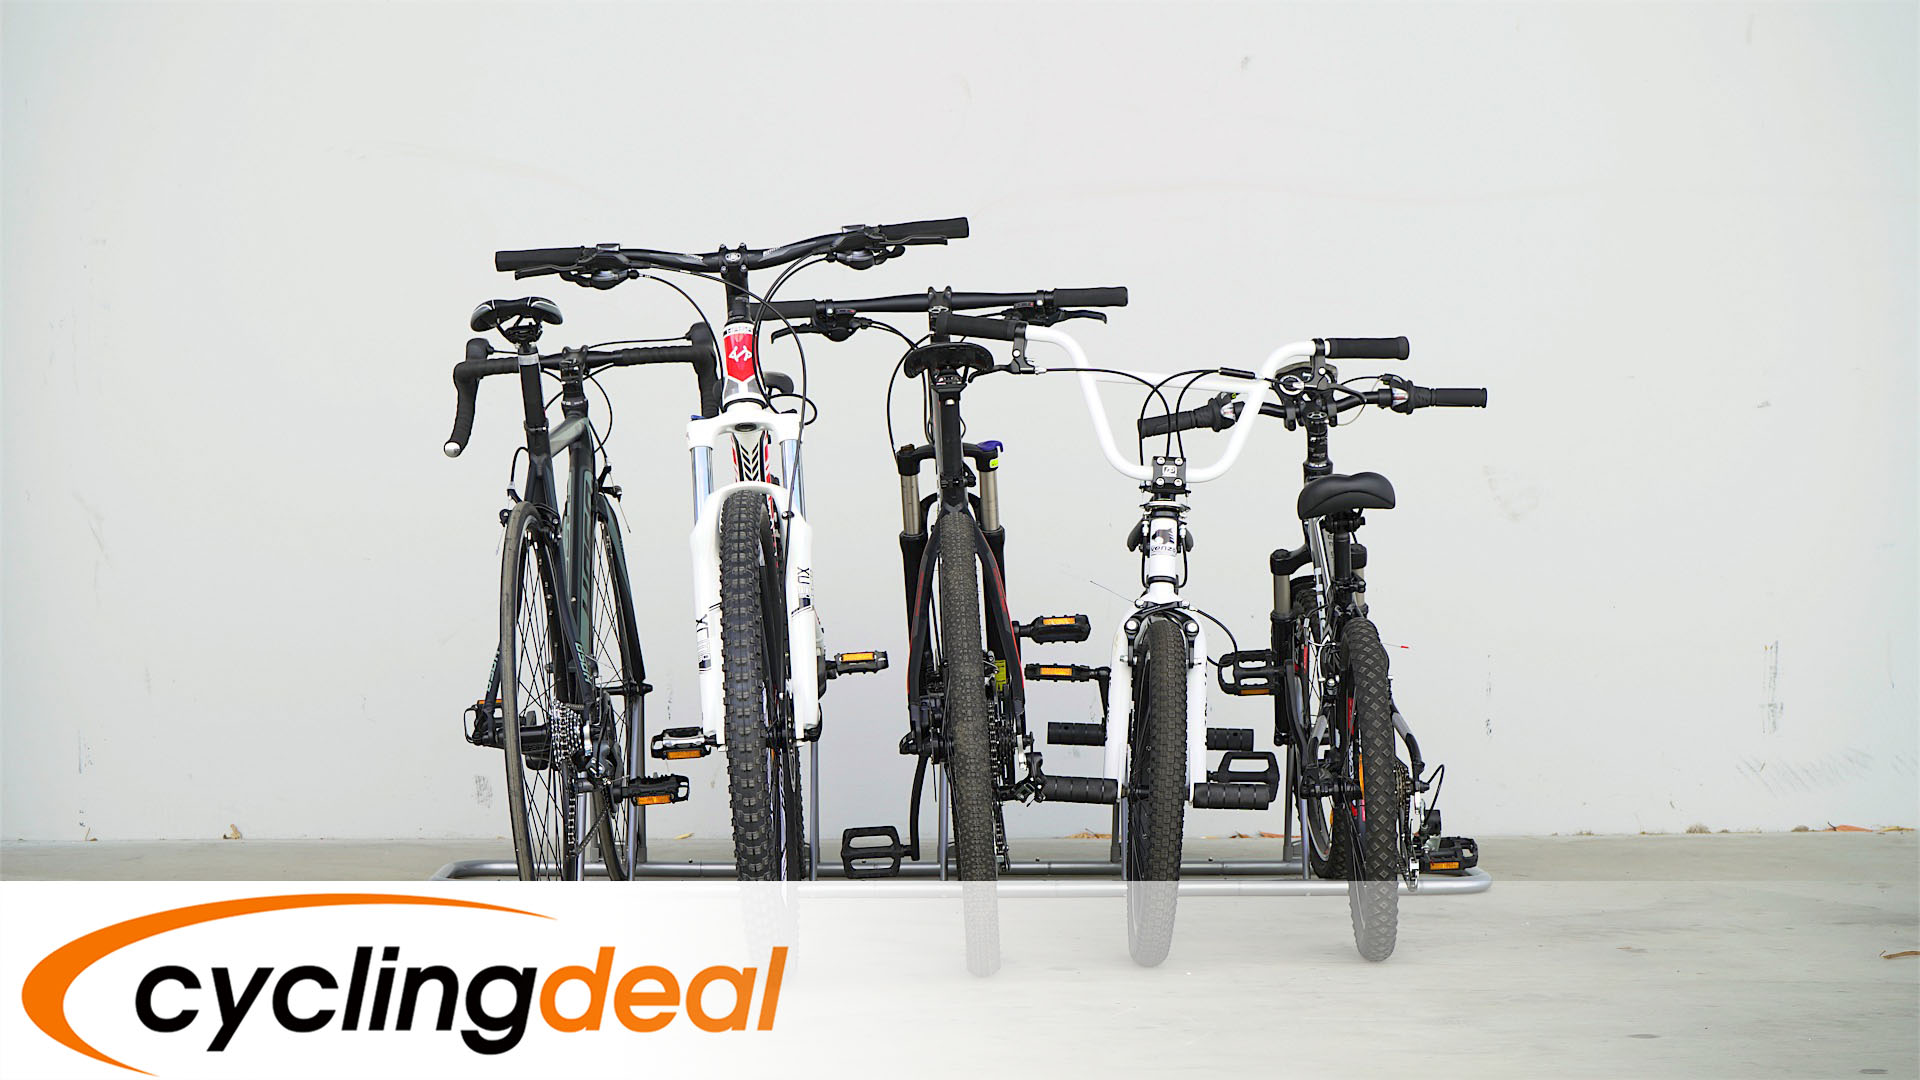 Cyclingdeal bike rack charging extension cable